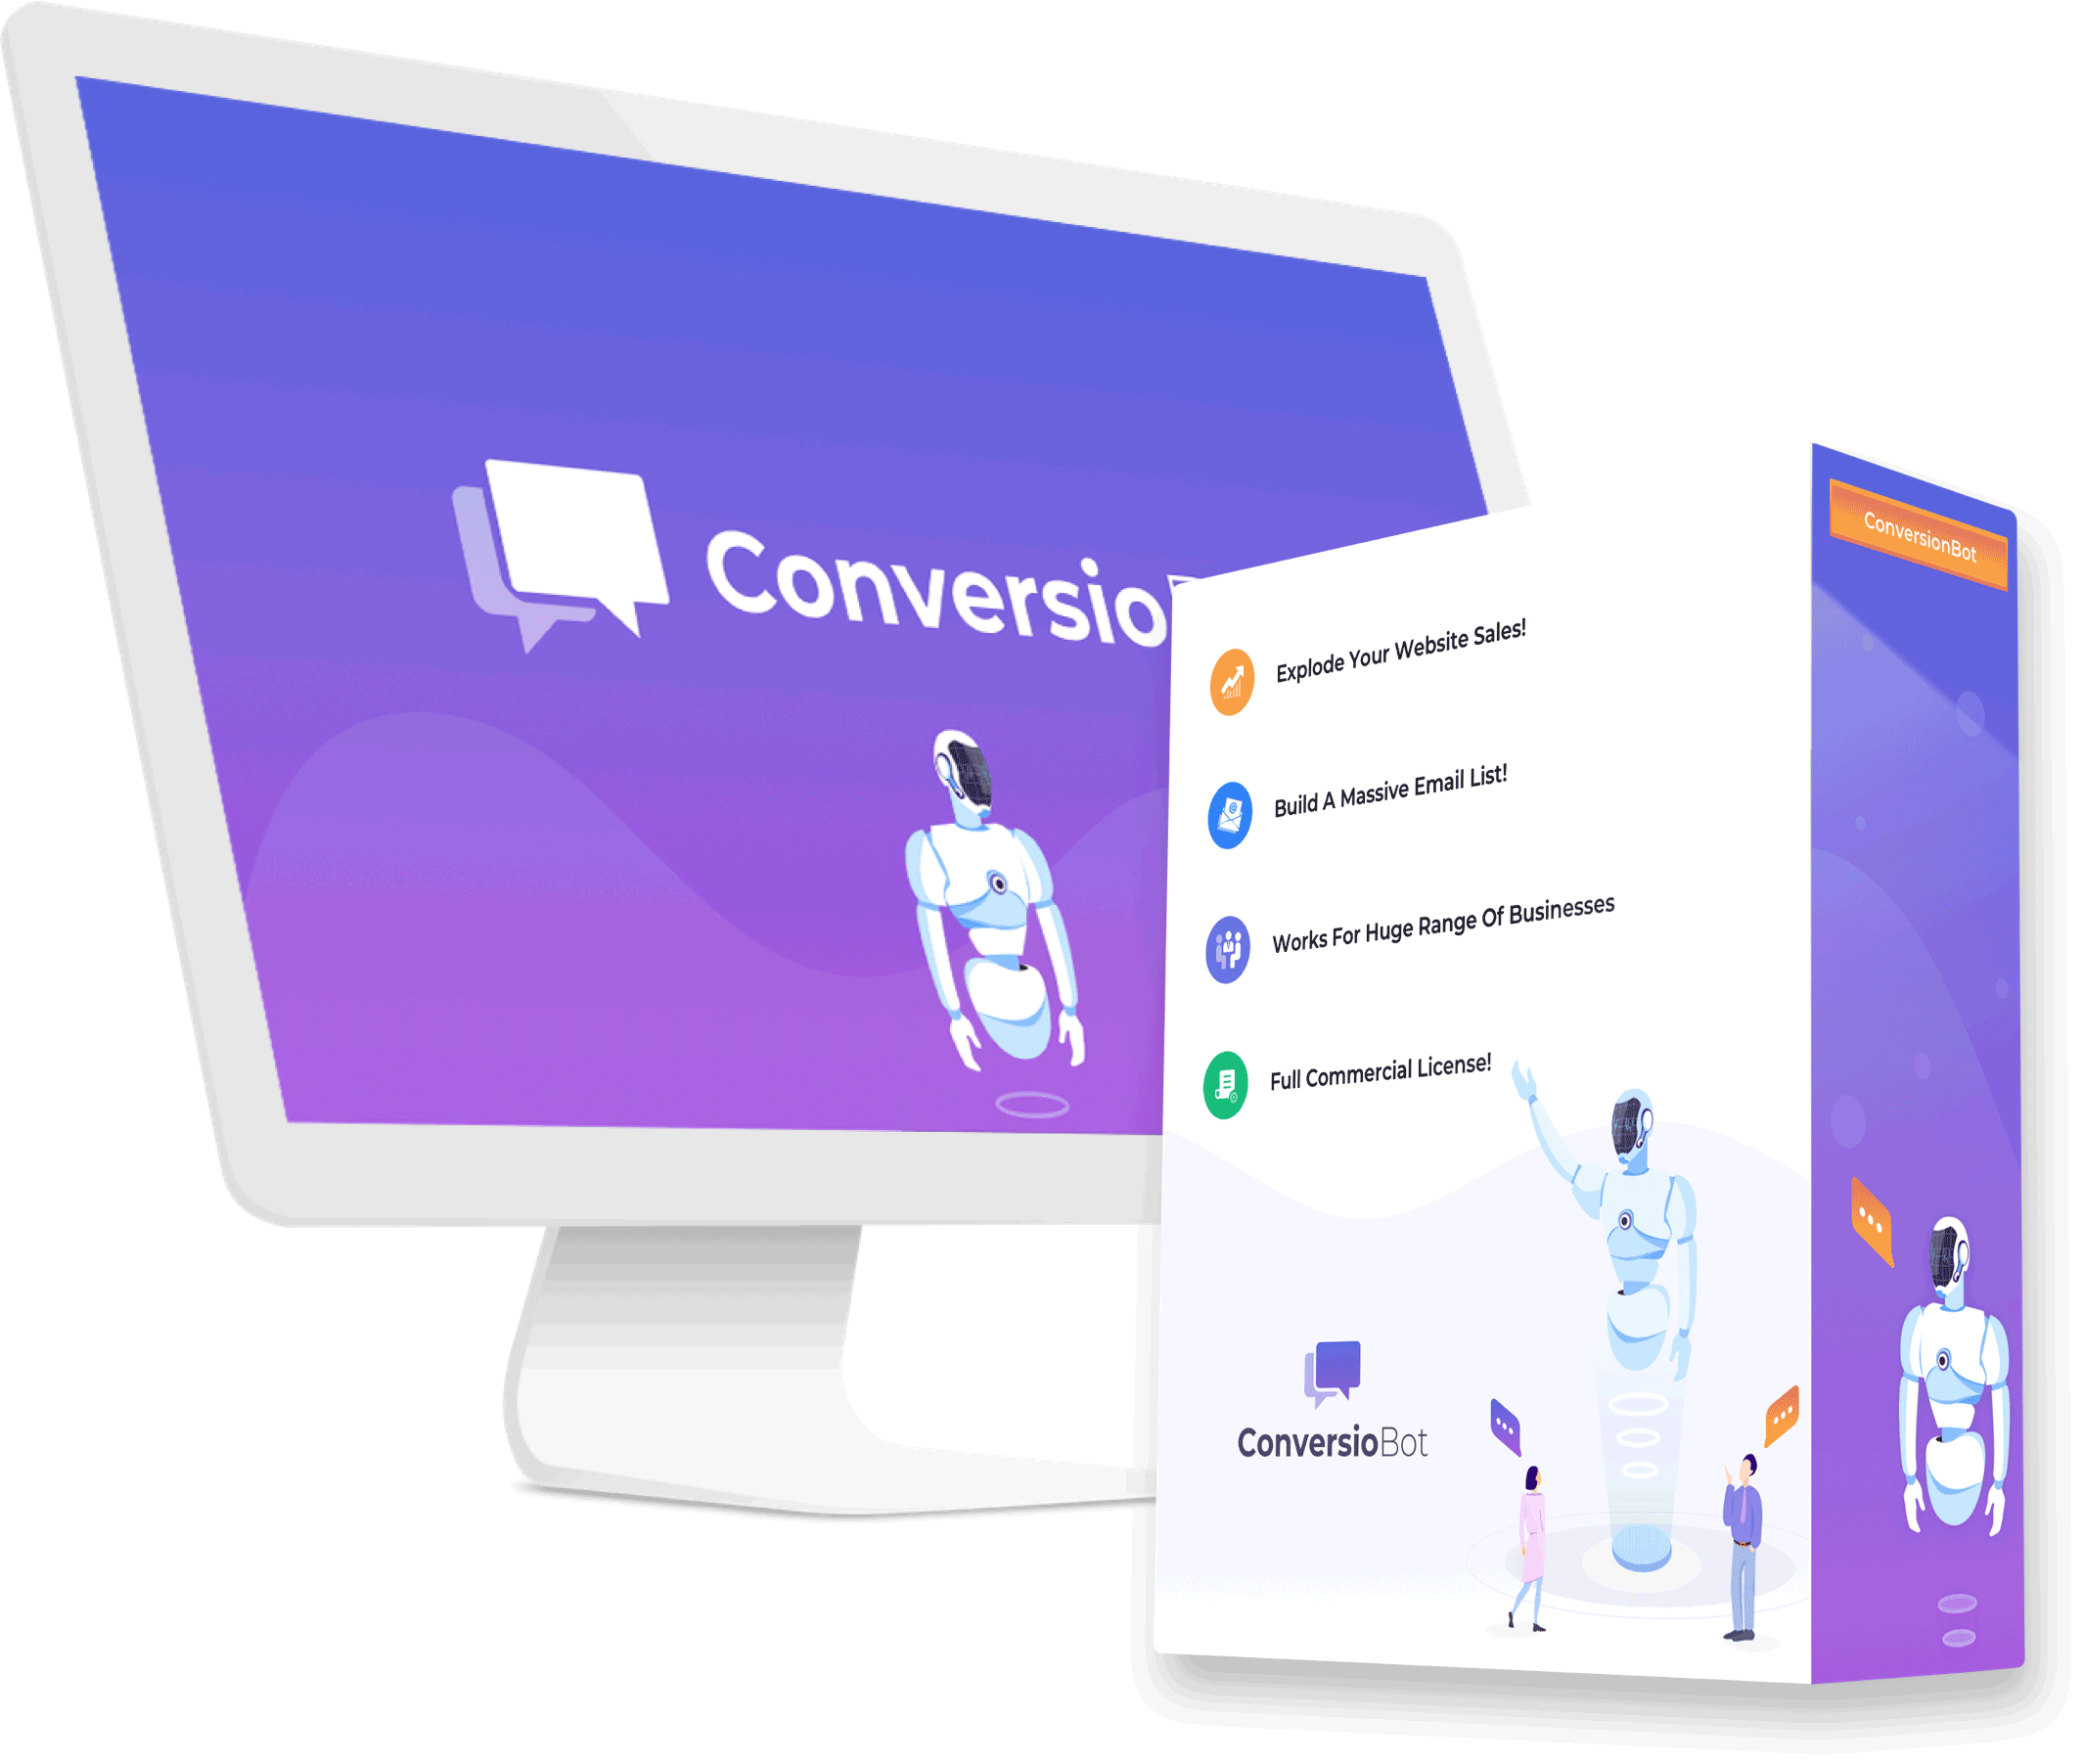 Conversiobot box view and screen graphic